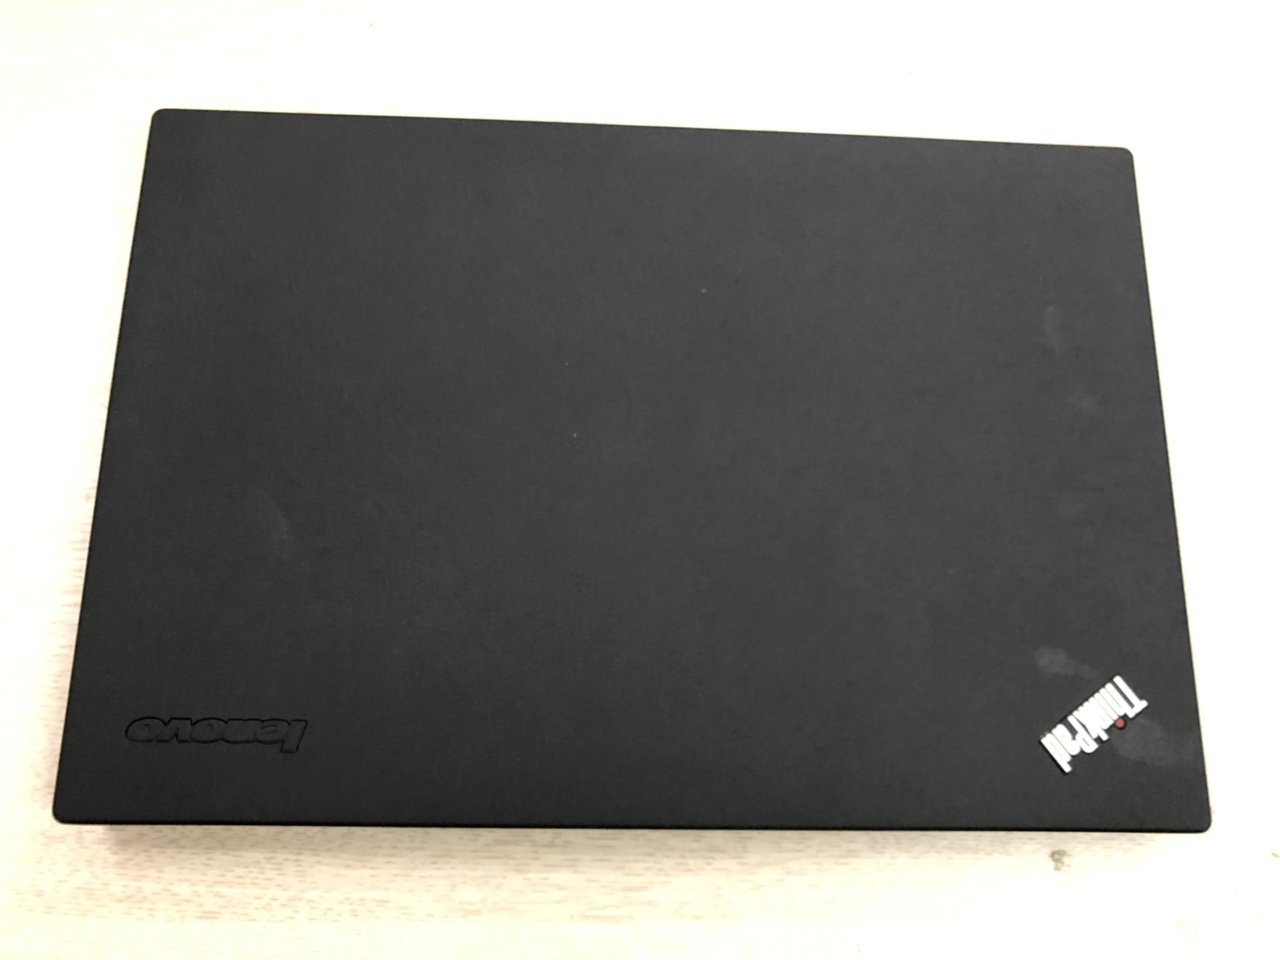 LenovoThinkpad X240 Core i5-4200